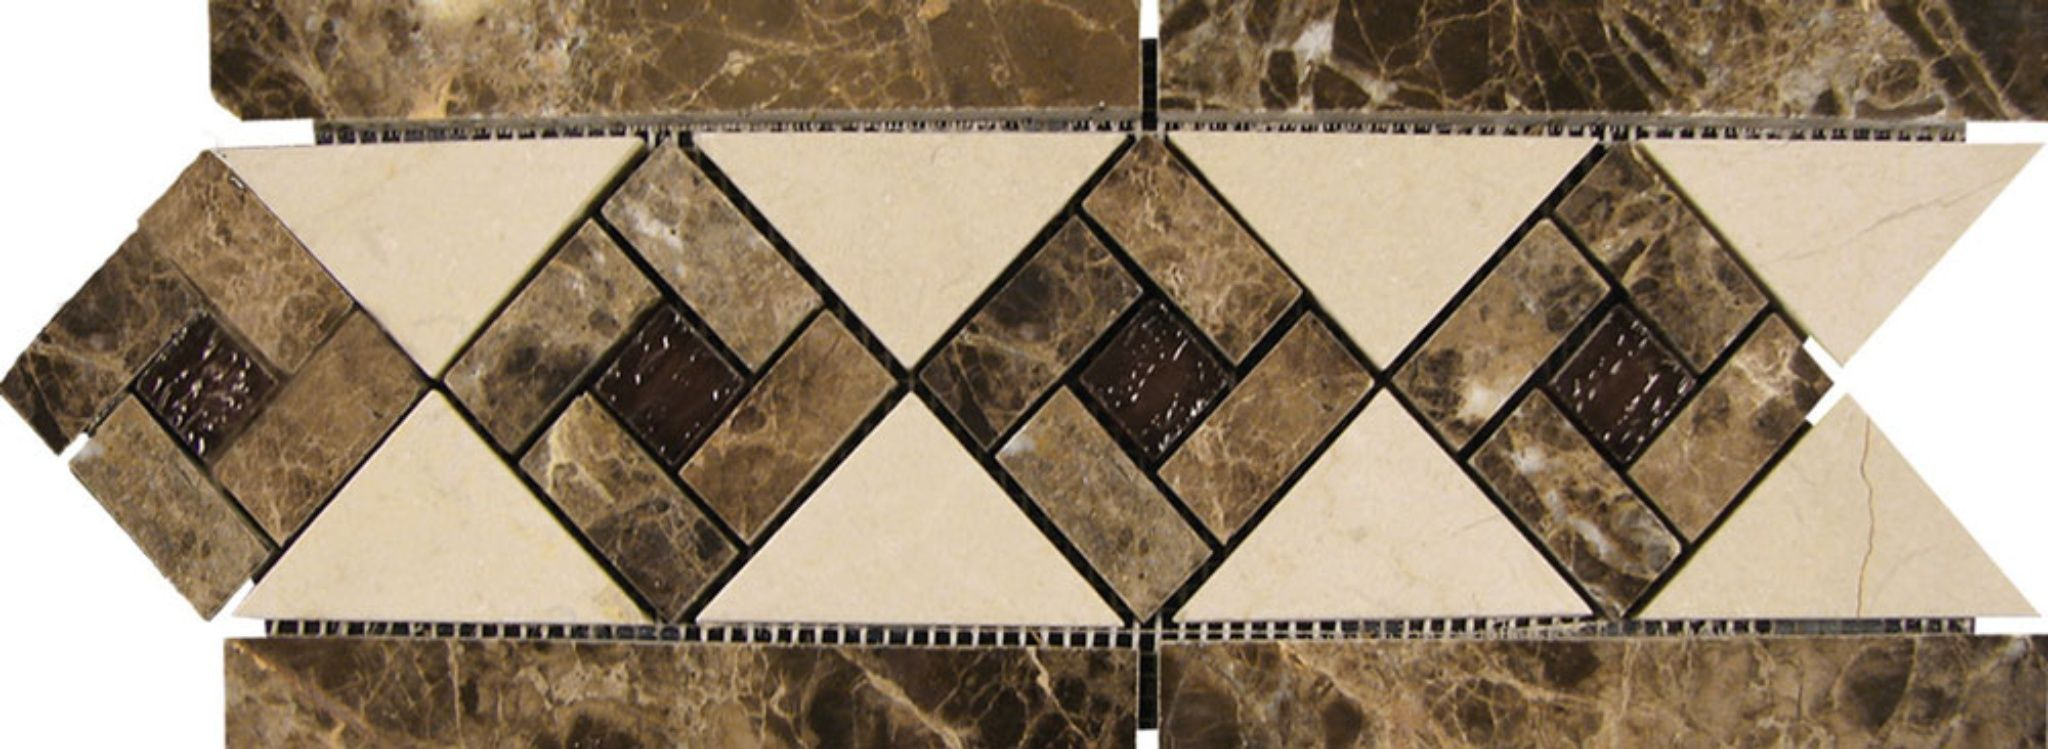 Floor And Wall Tile Interceramic This Product Belongs To Accents In Stone Series Visit Our Website Www Com Tiles